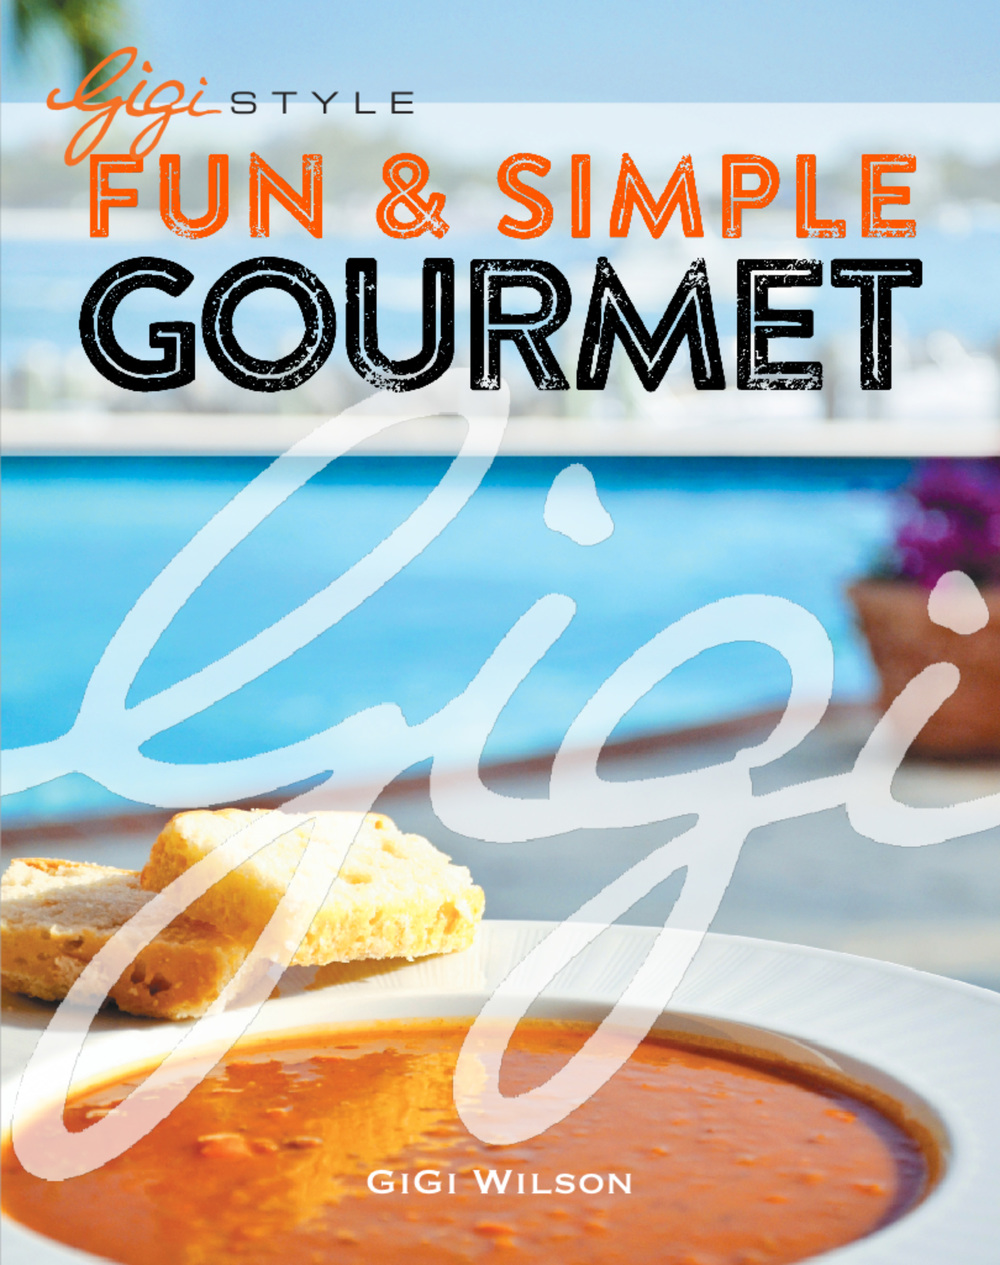 Stay tuned for the summer launch of gigi's new lifestyle cookbook!